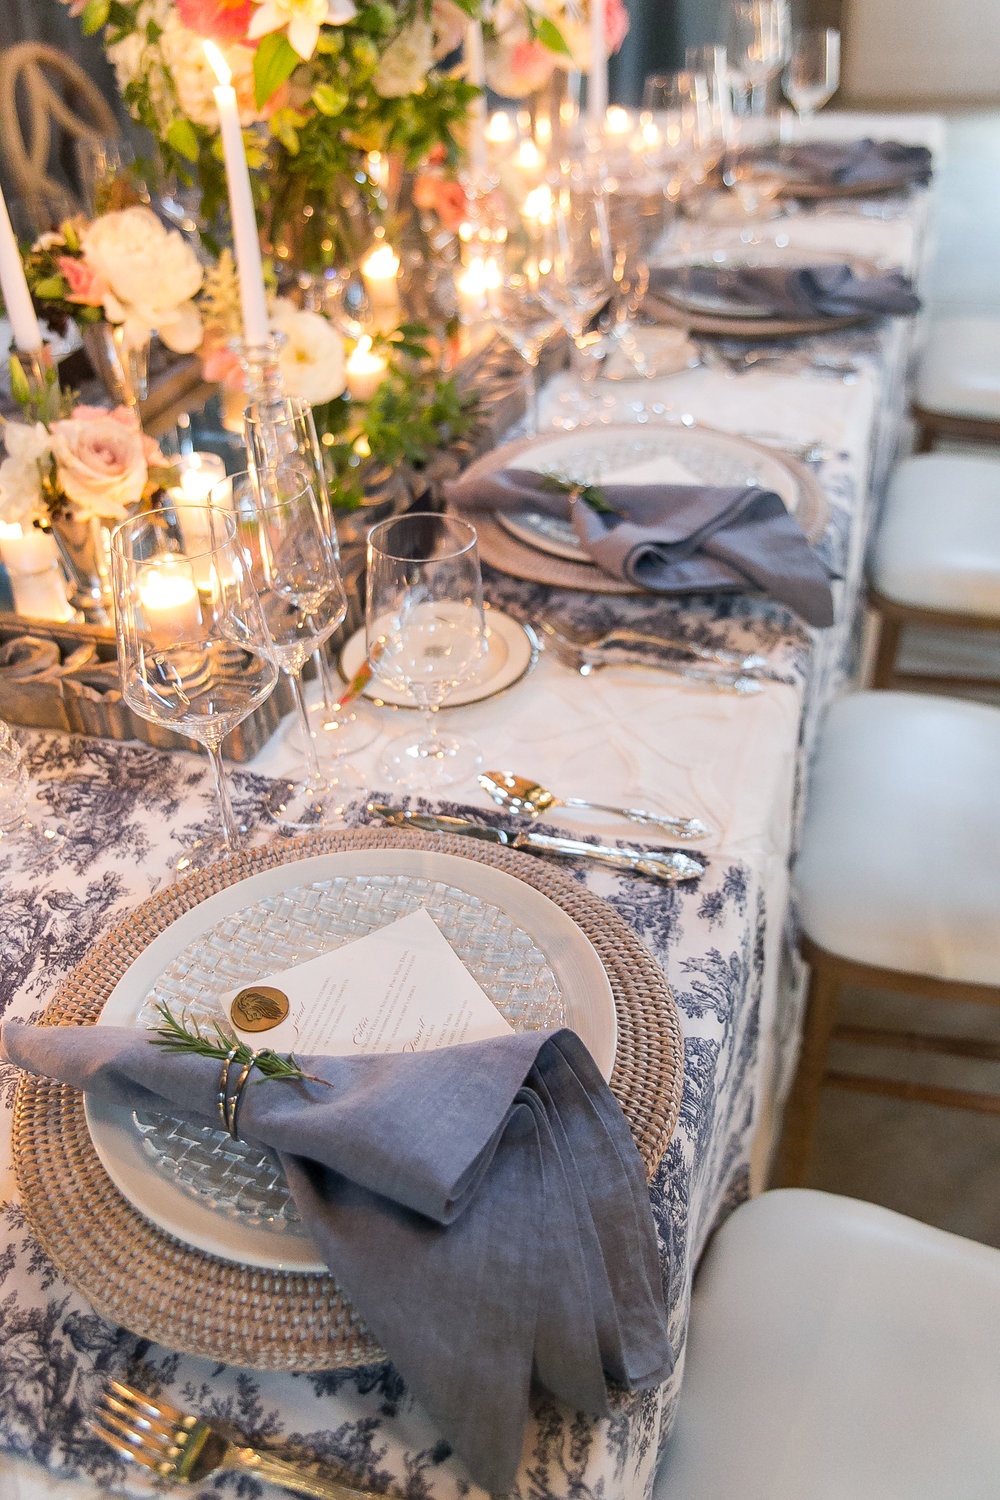 Southern Summer at Home Wedding Barn Chapel Hill NC tablescape linens